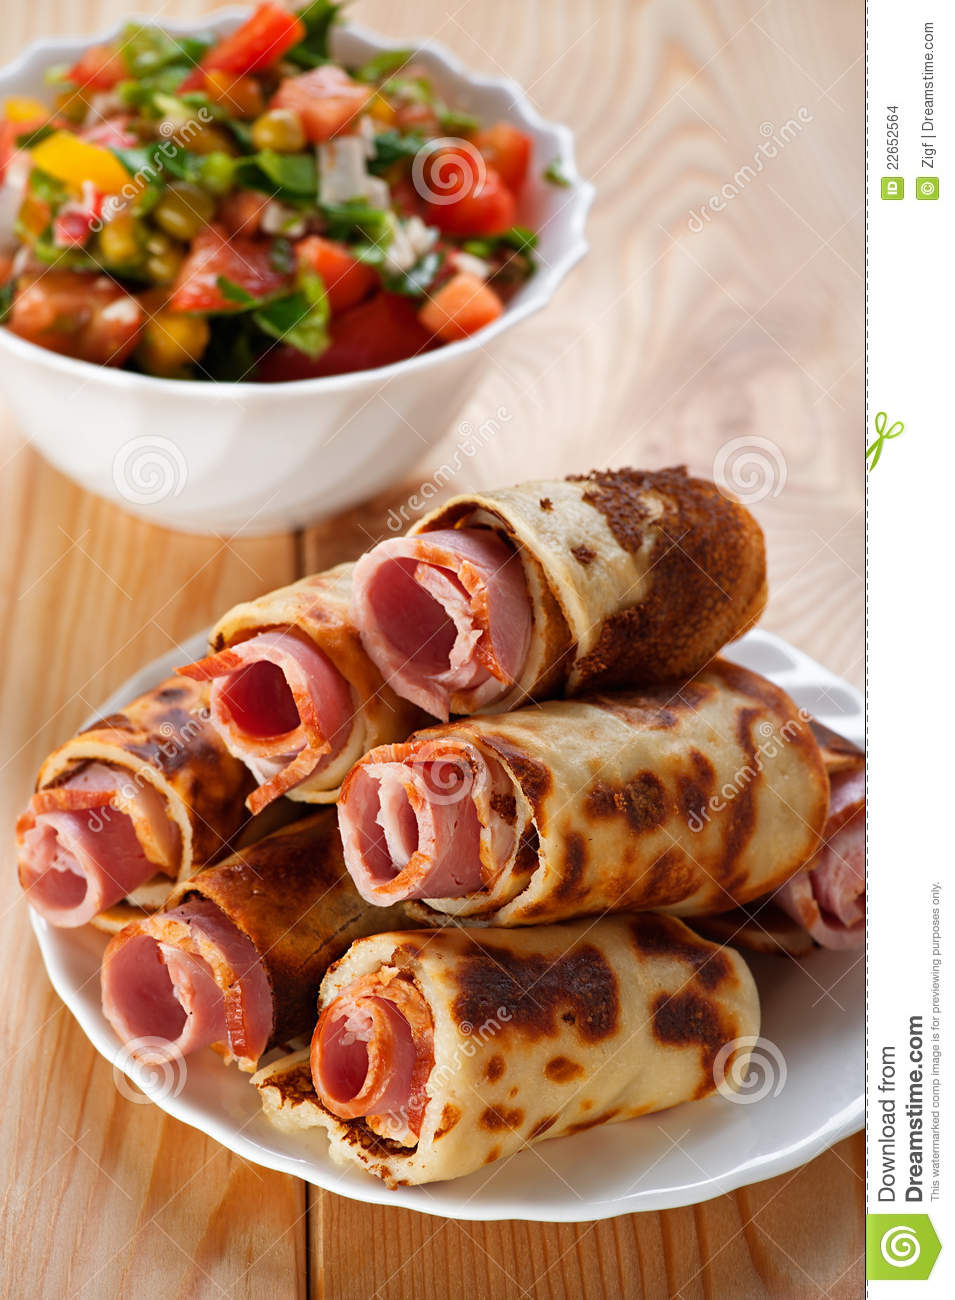 Meat rolls in the omelet, vegetable